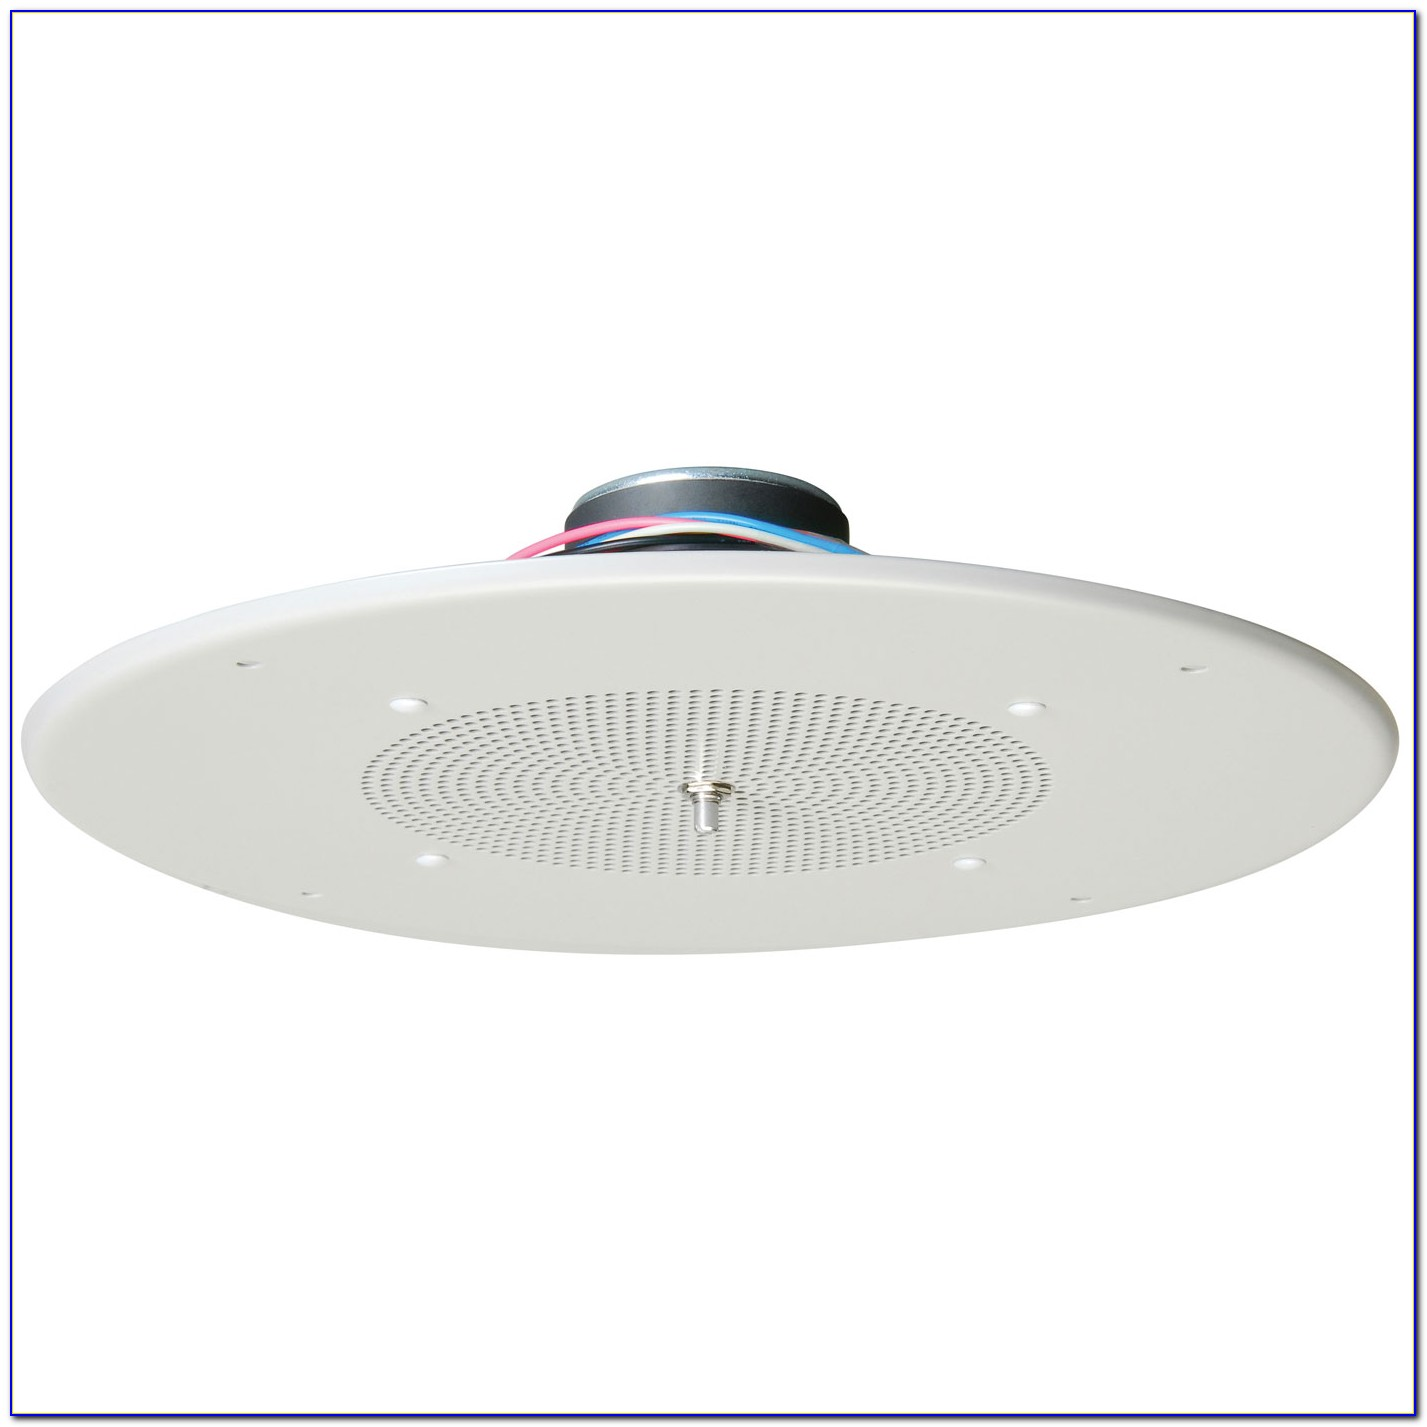 Ceiling Speaker With Built In Volume Control